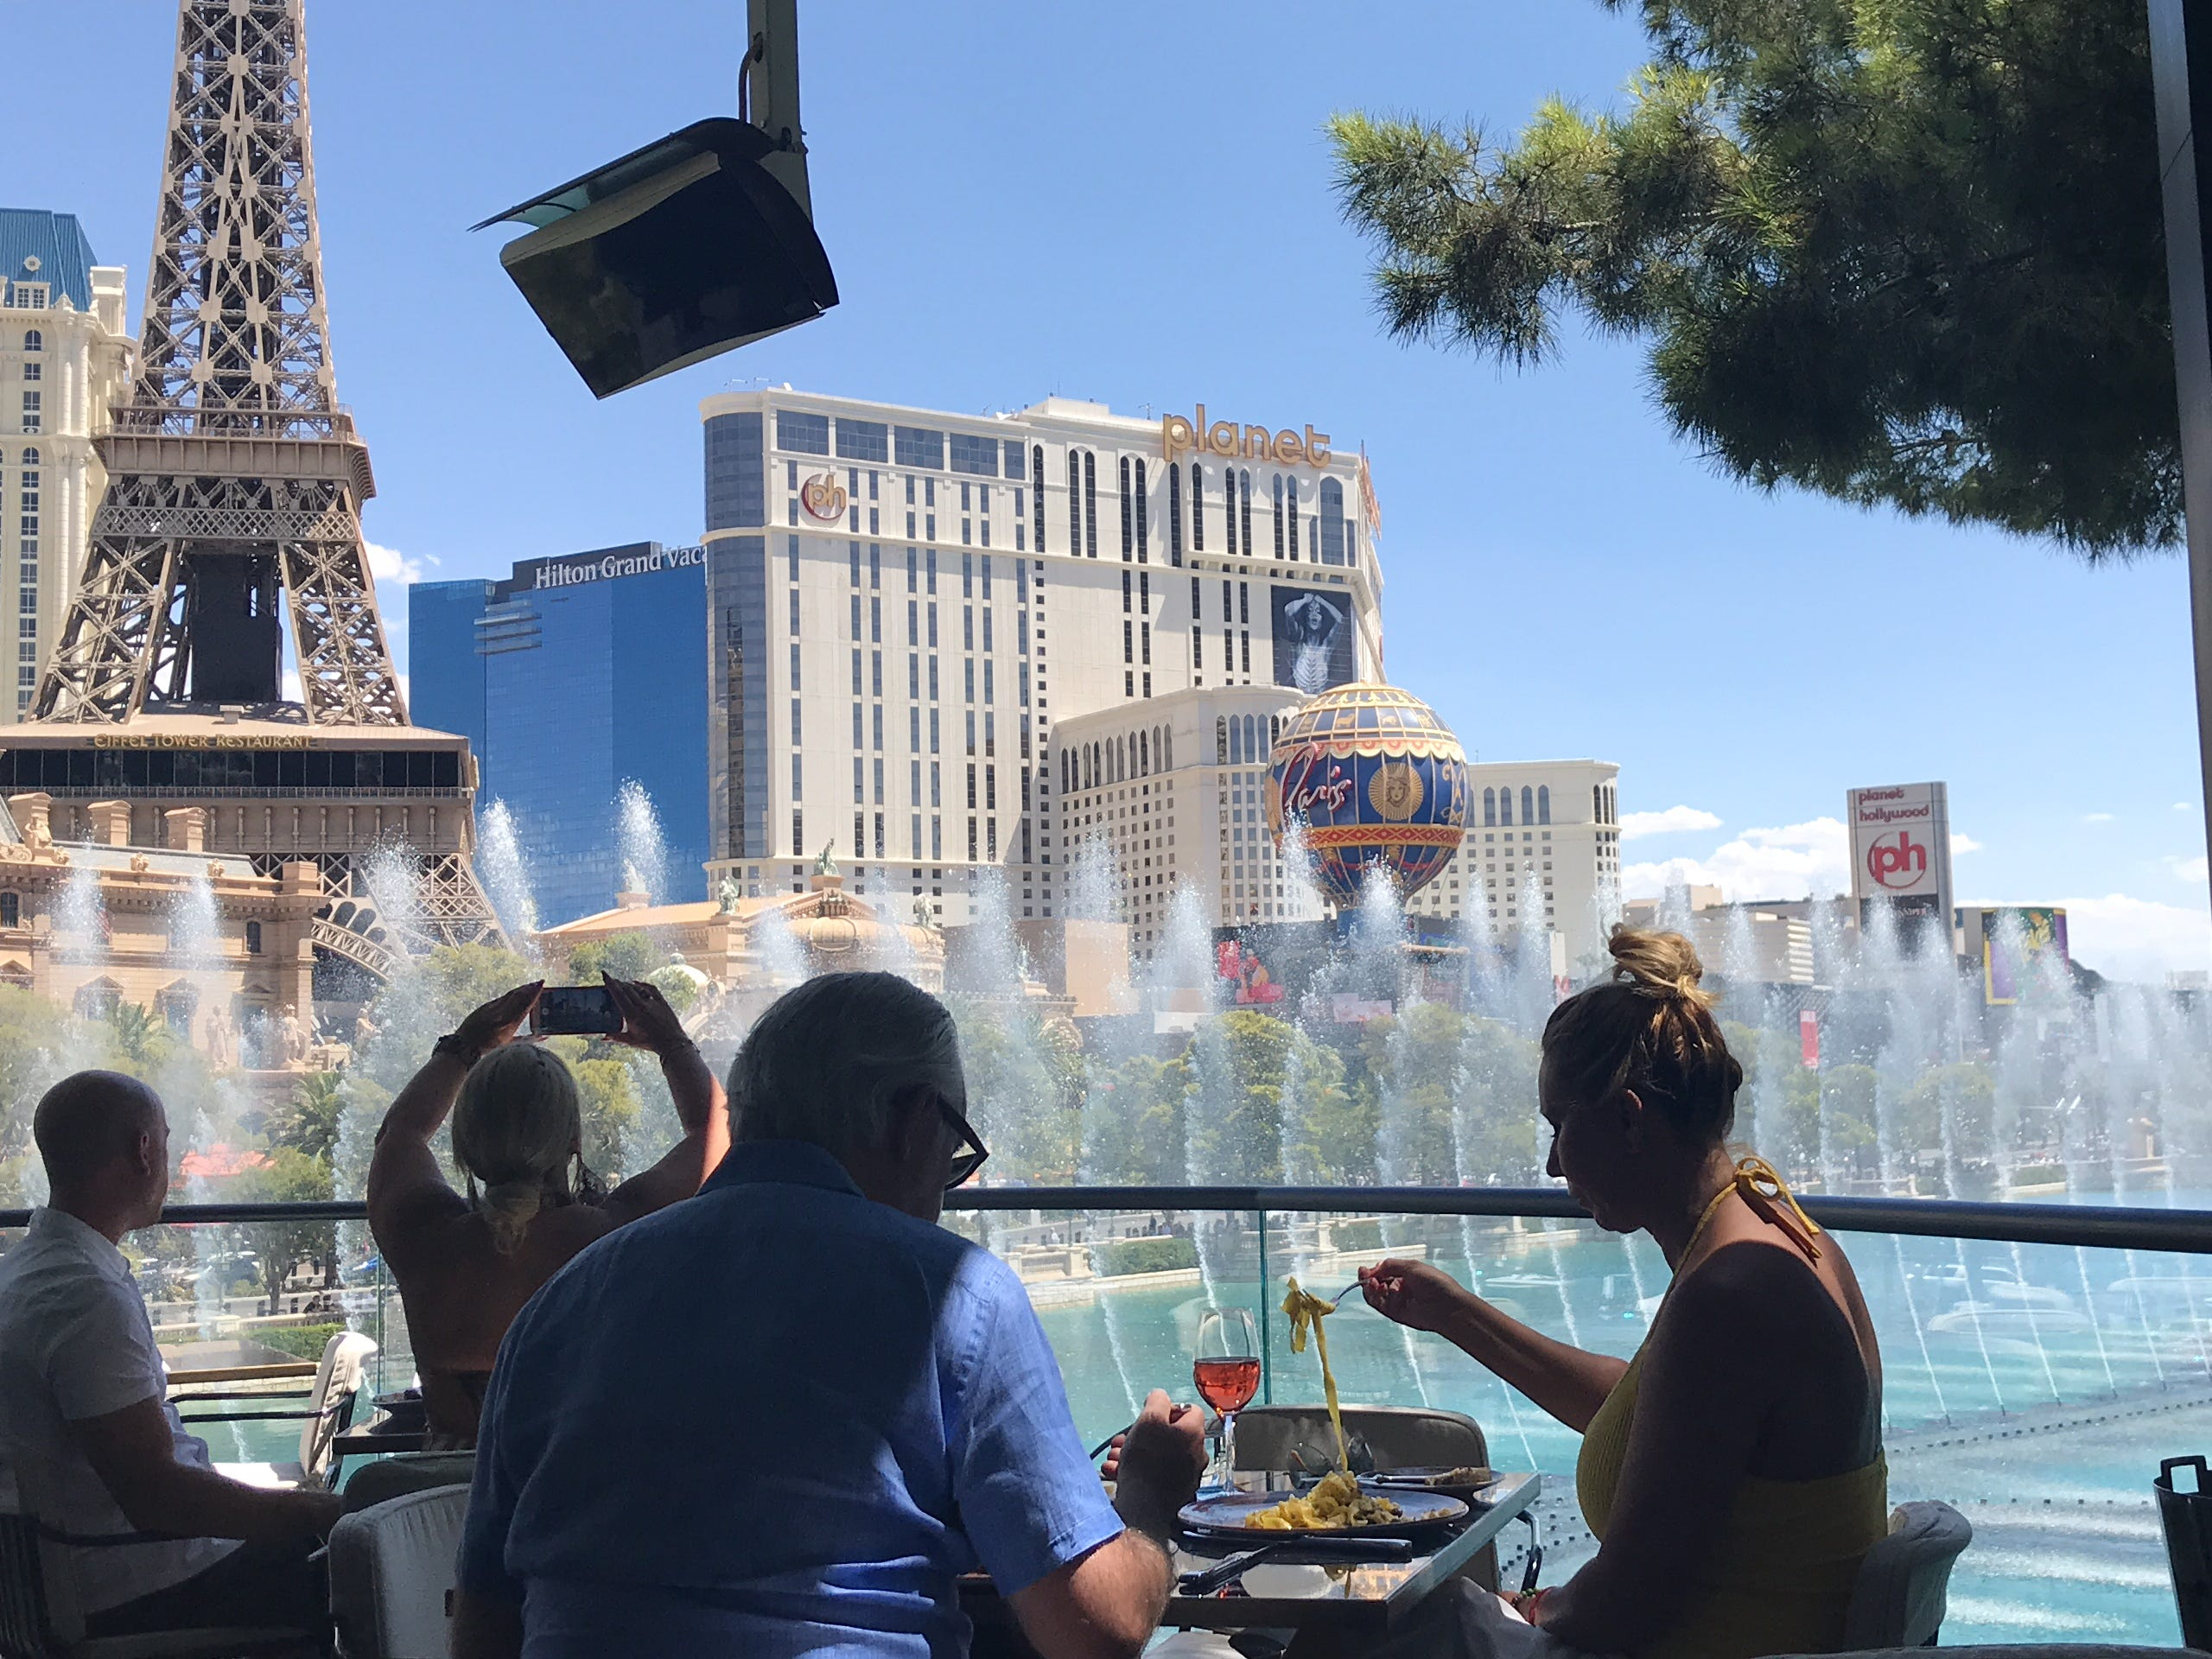 Lunch at the new Spago restaurant at Bellagio comes with a stunning side: views of the dancing Bellagio fountains.